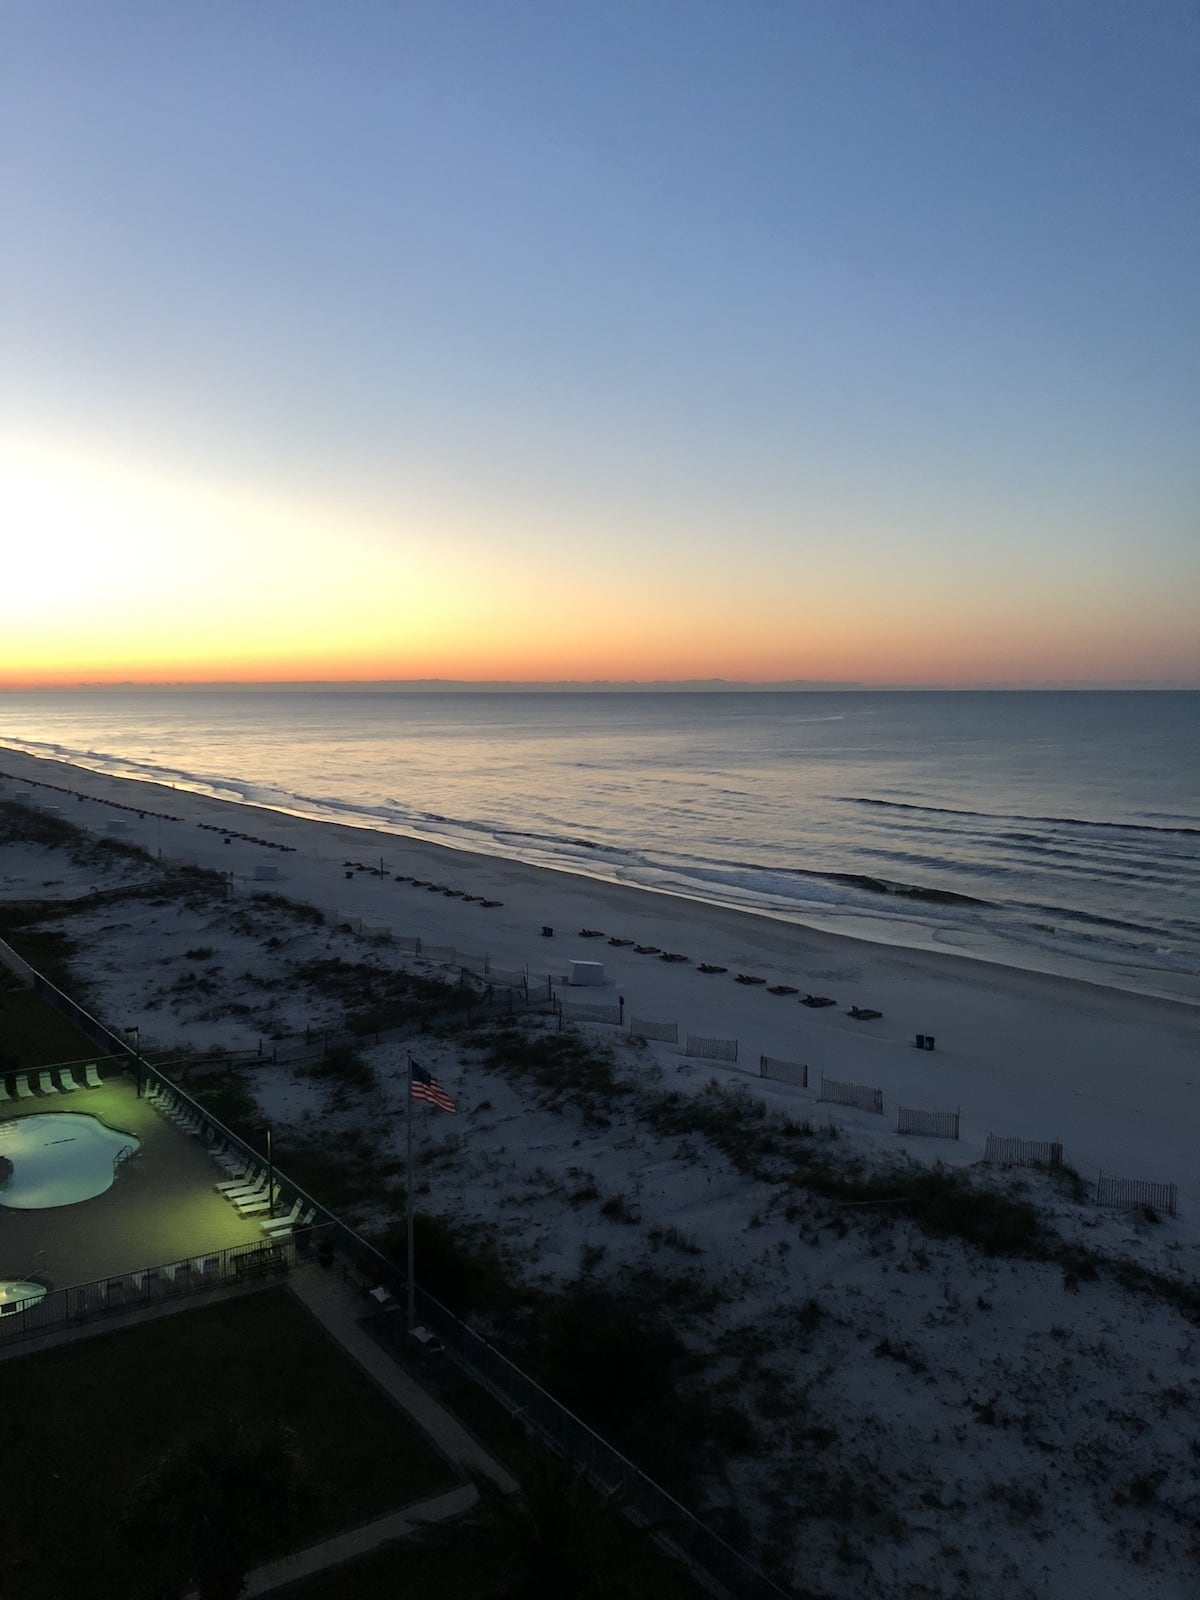 Gulf Shores, Alabama for a Girlfriend Getaway: 5 Reasons to Go - Sunrise